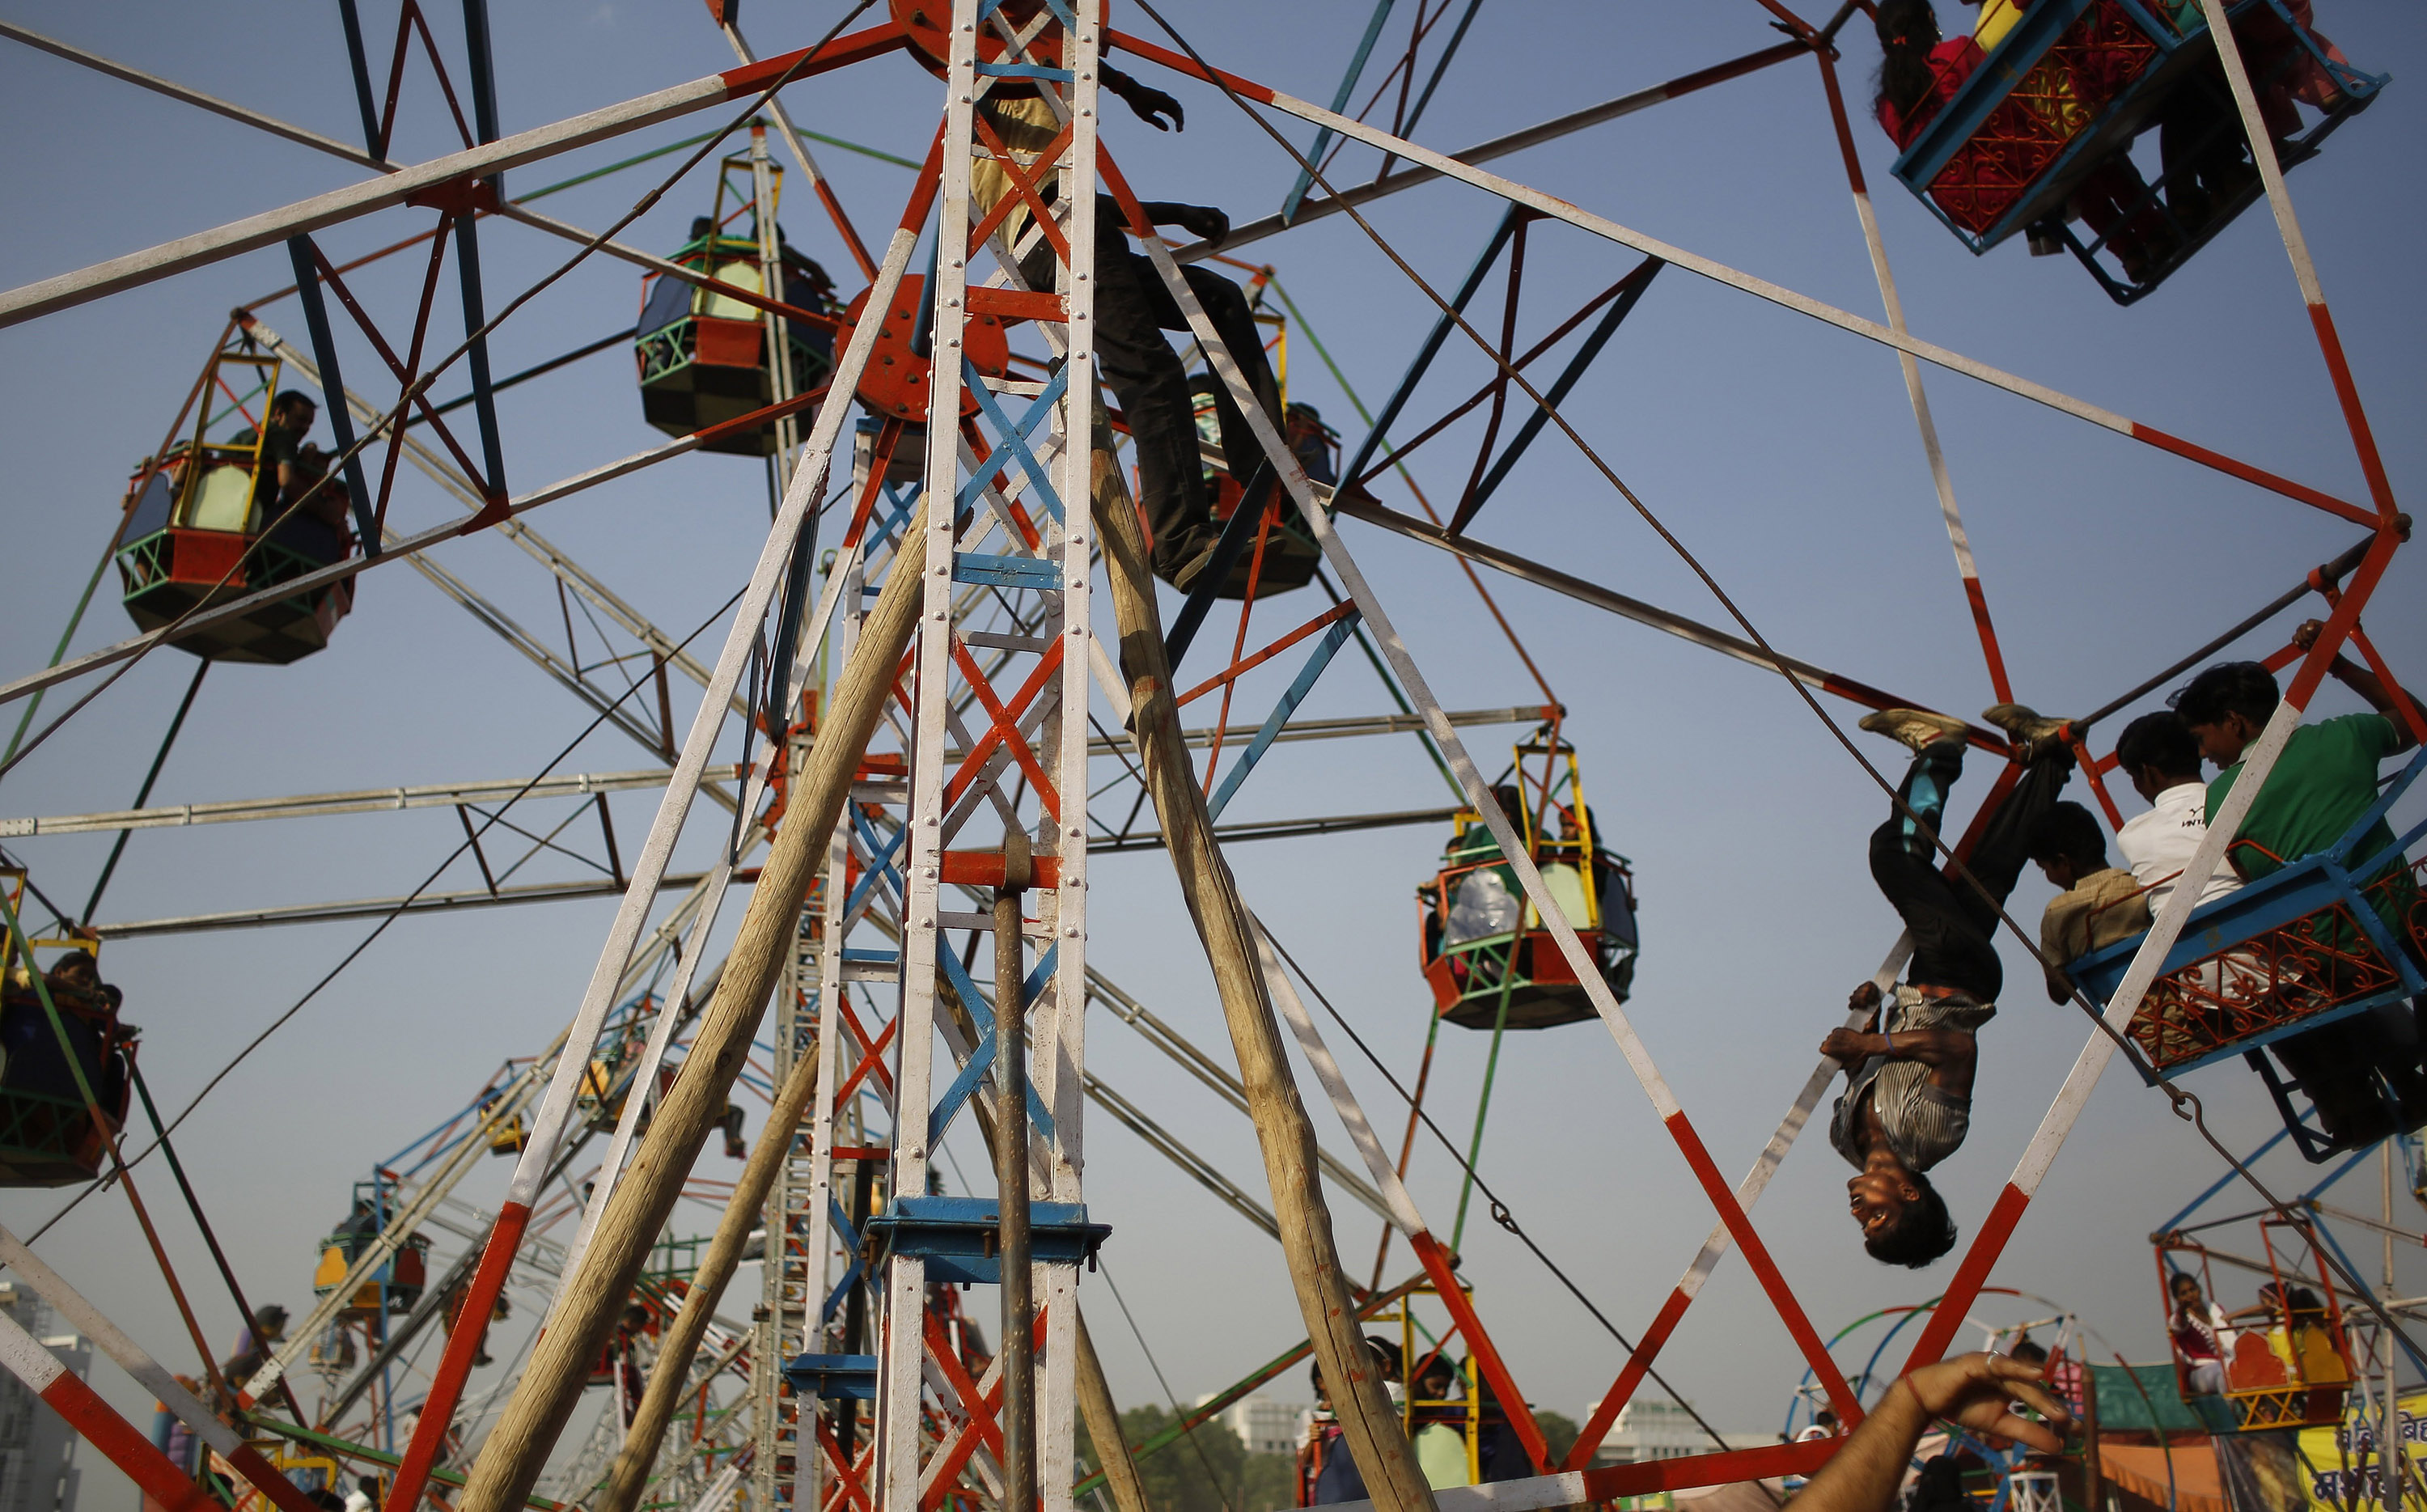 An Indian worker rides upside down to push a giant wheel at a fair ground during Dussehra celebrations on the outskirts of New Delhi, Oct. 3, 2014.